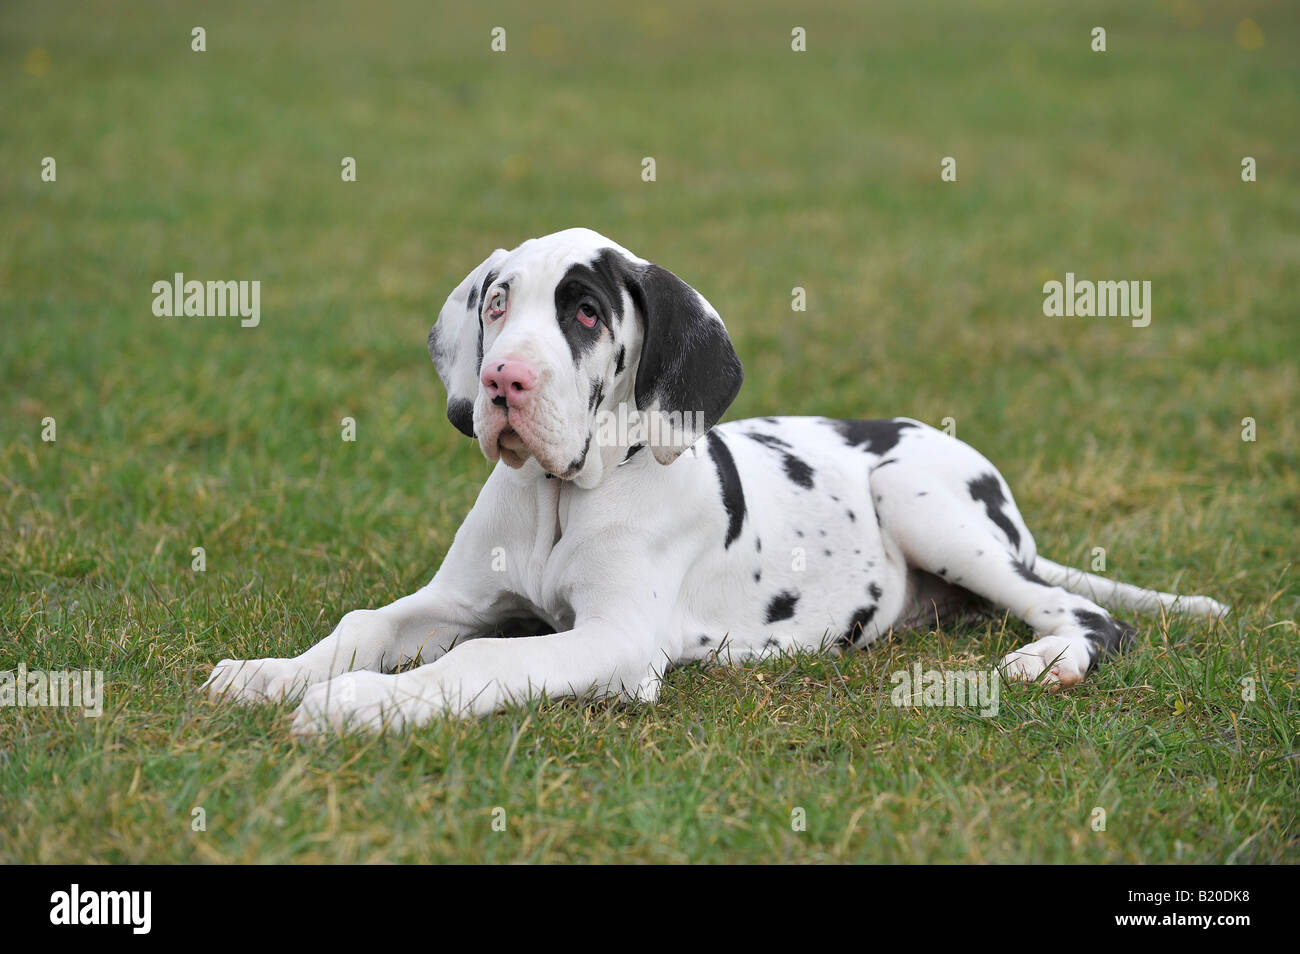 Harlequin Great Dane Puppy Lying Down Stock Photo Alamy